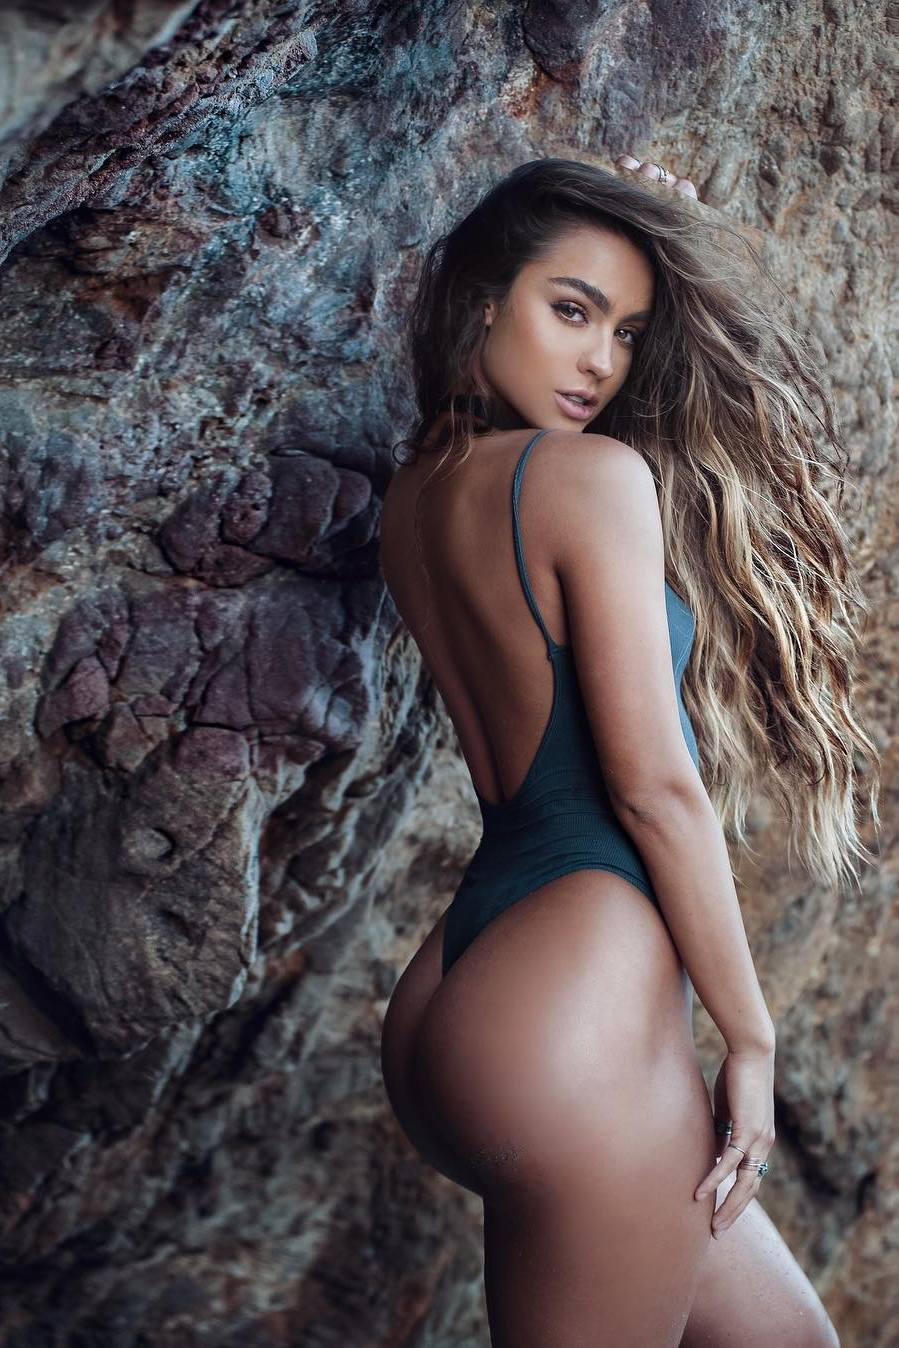 sommer ray fitness model girl stone adorable pretty